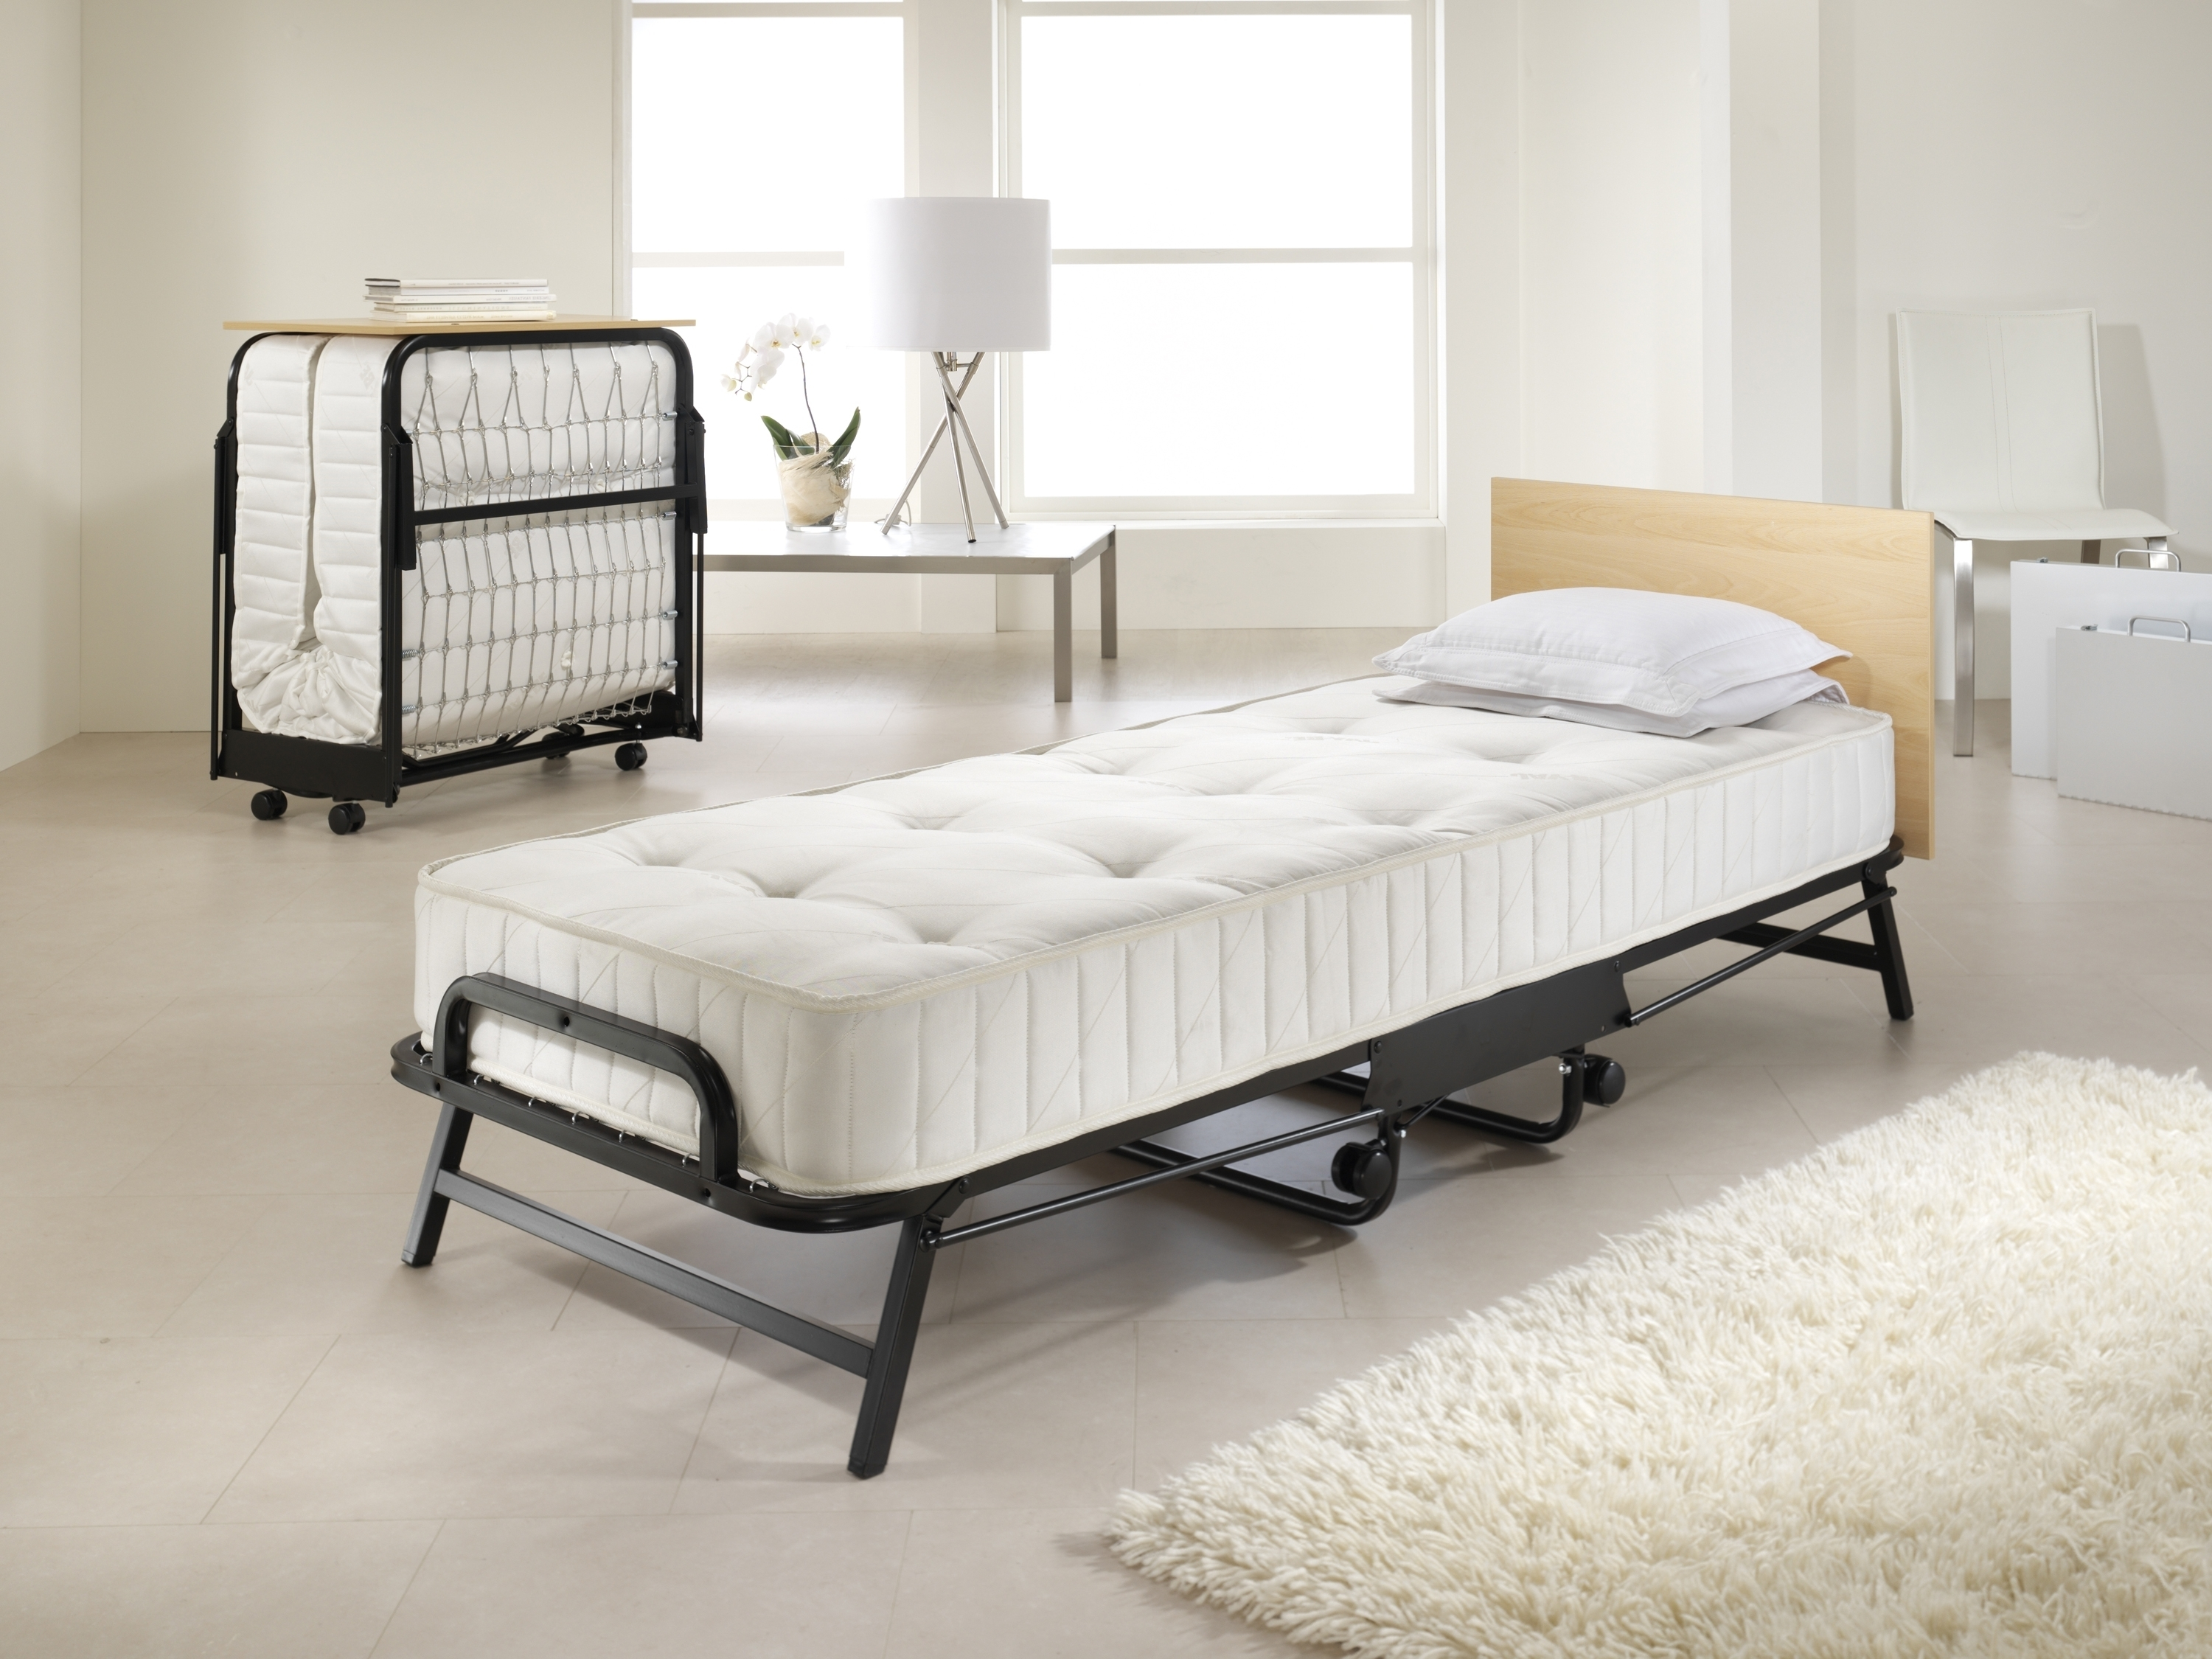 Bed Frame Styles Types